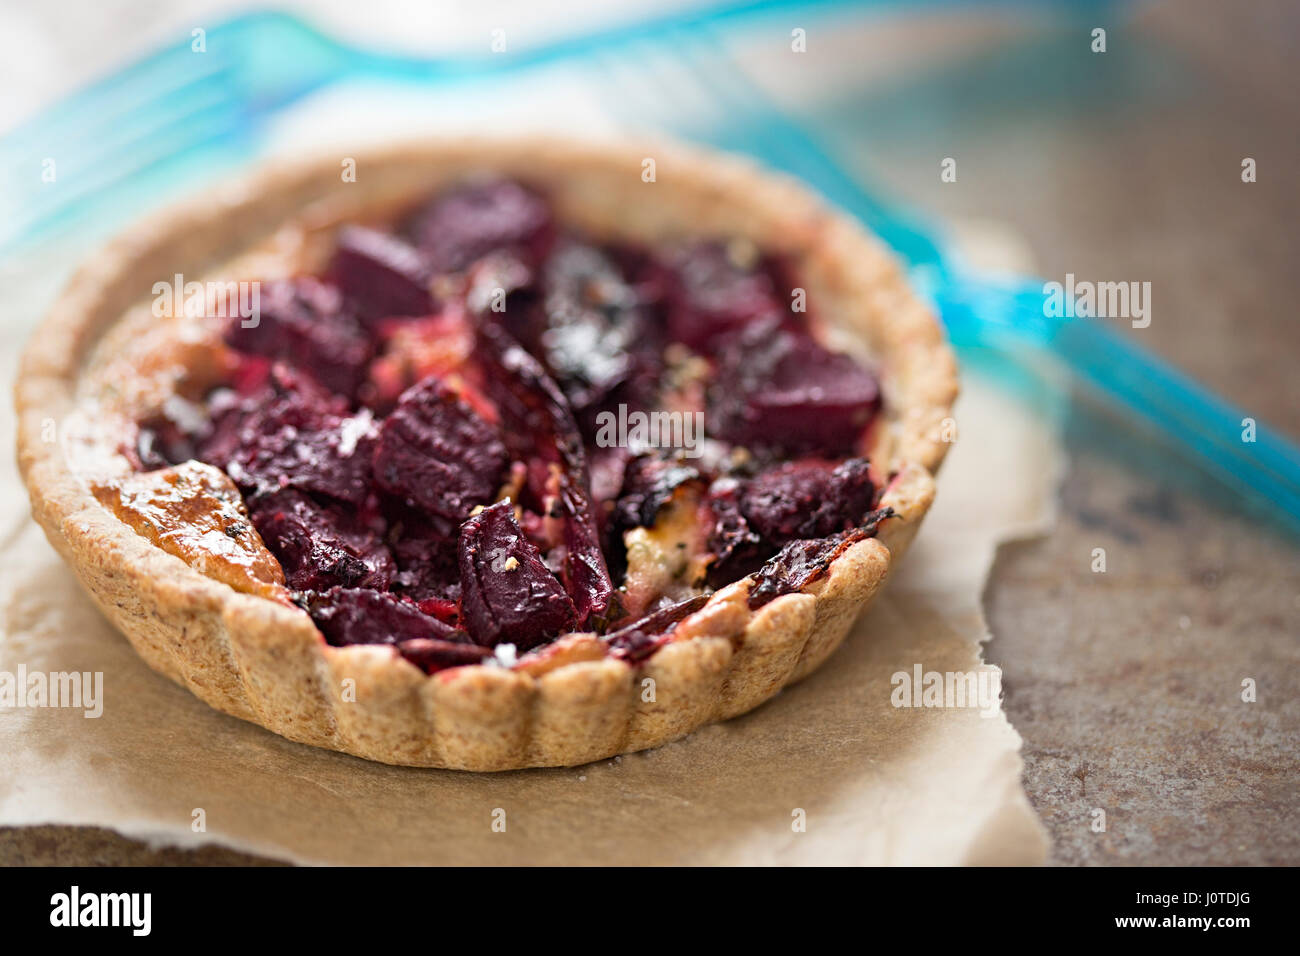 Beetroot and red onion tart - Stock Image